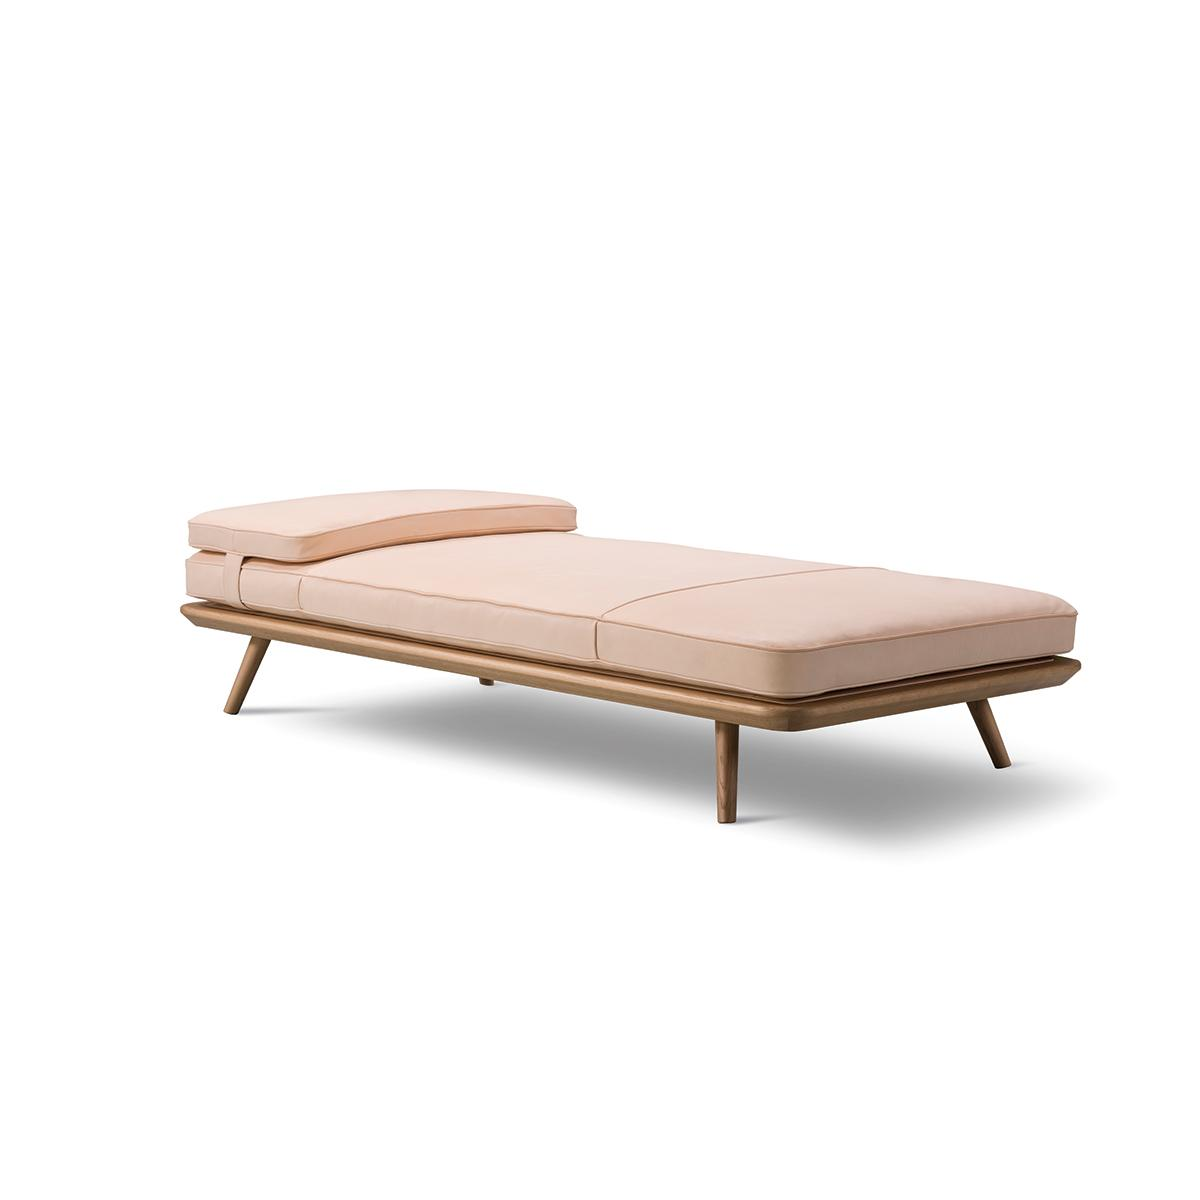 Spine-Daybed-Natural-Angle-1200